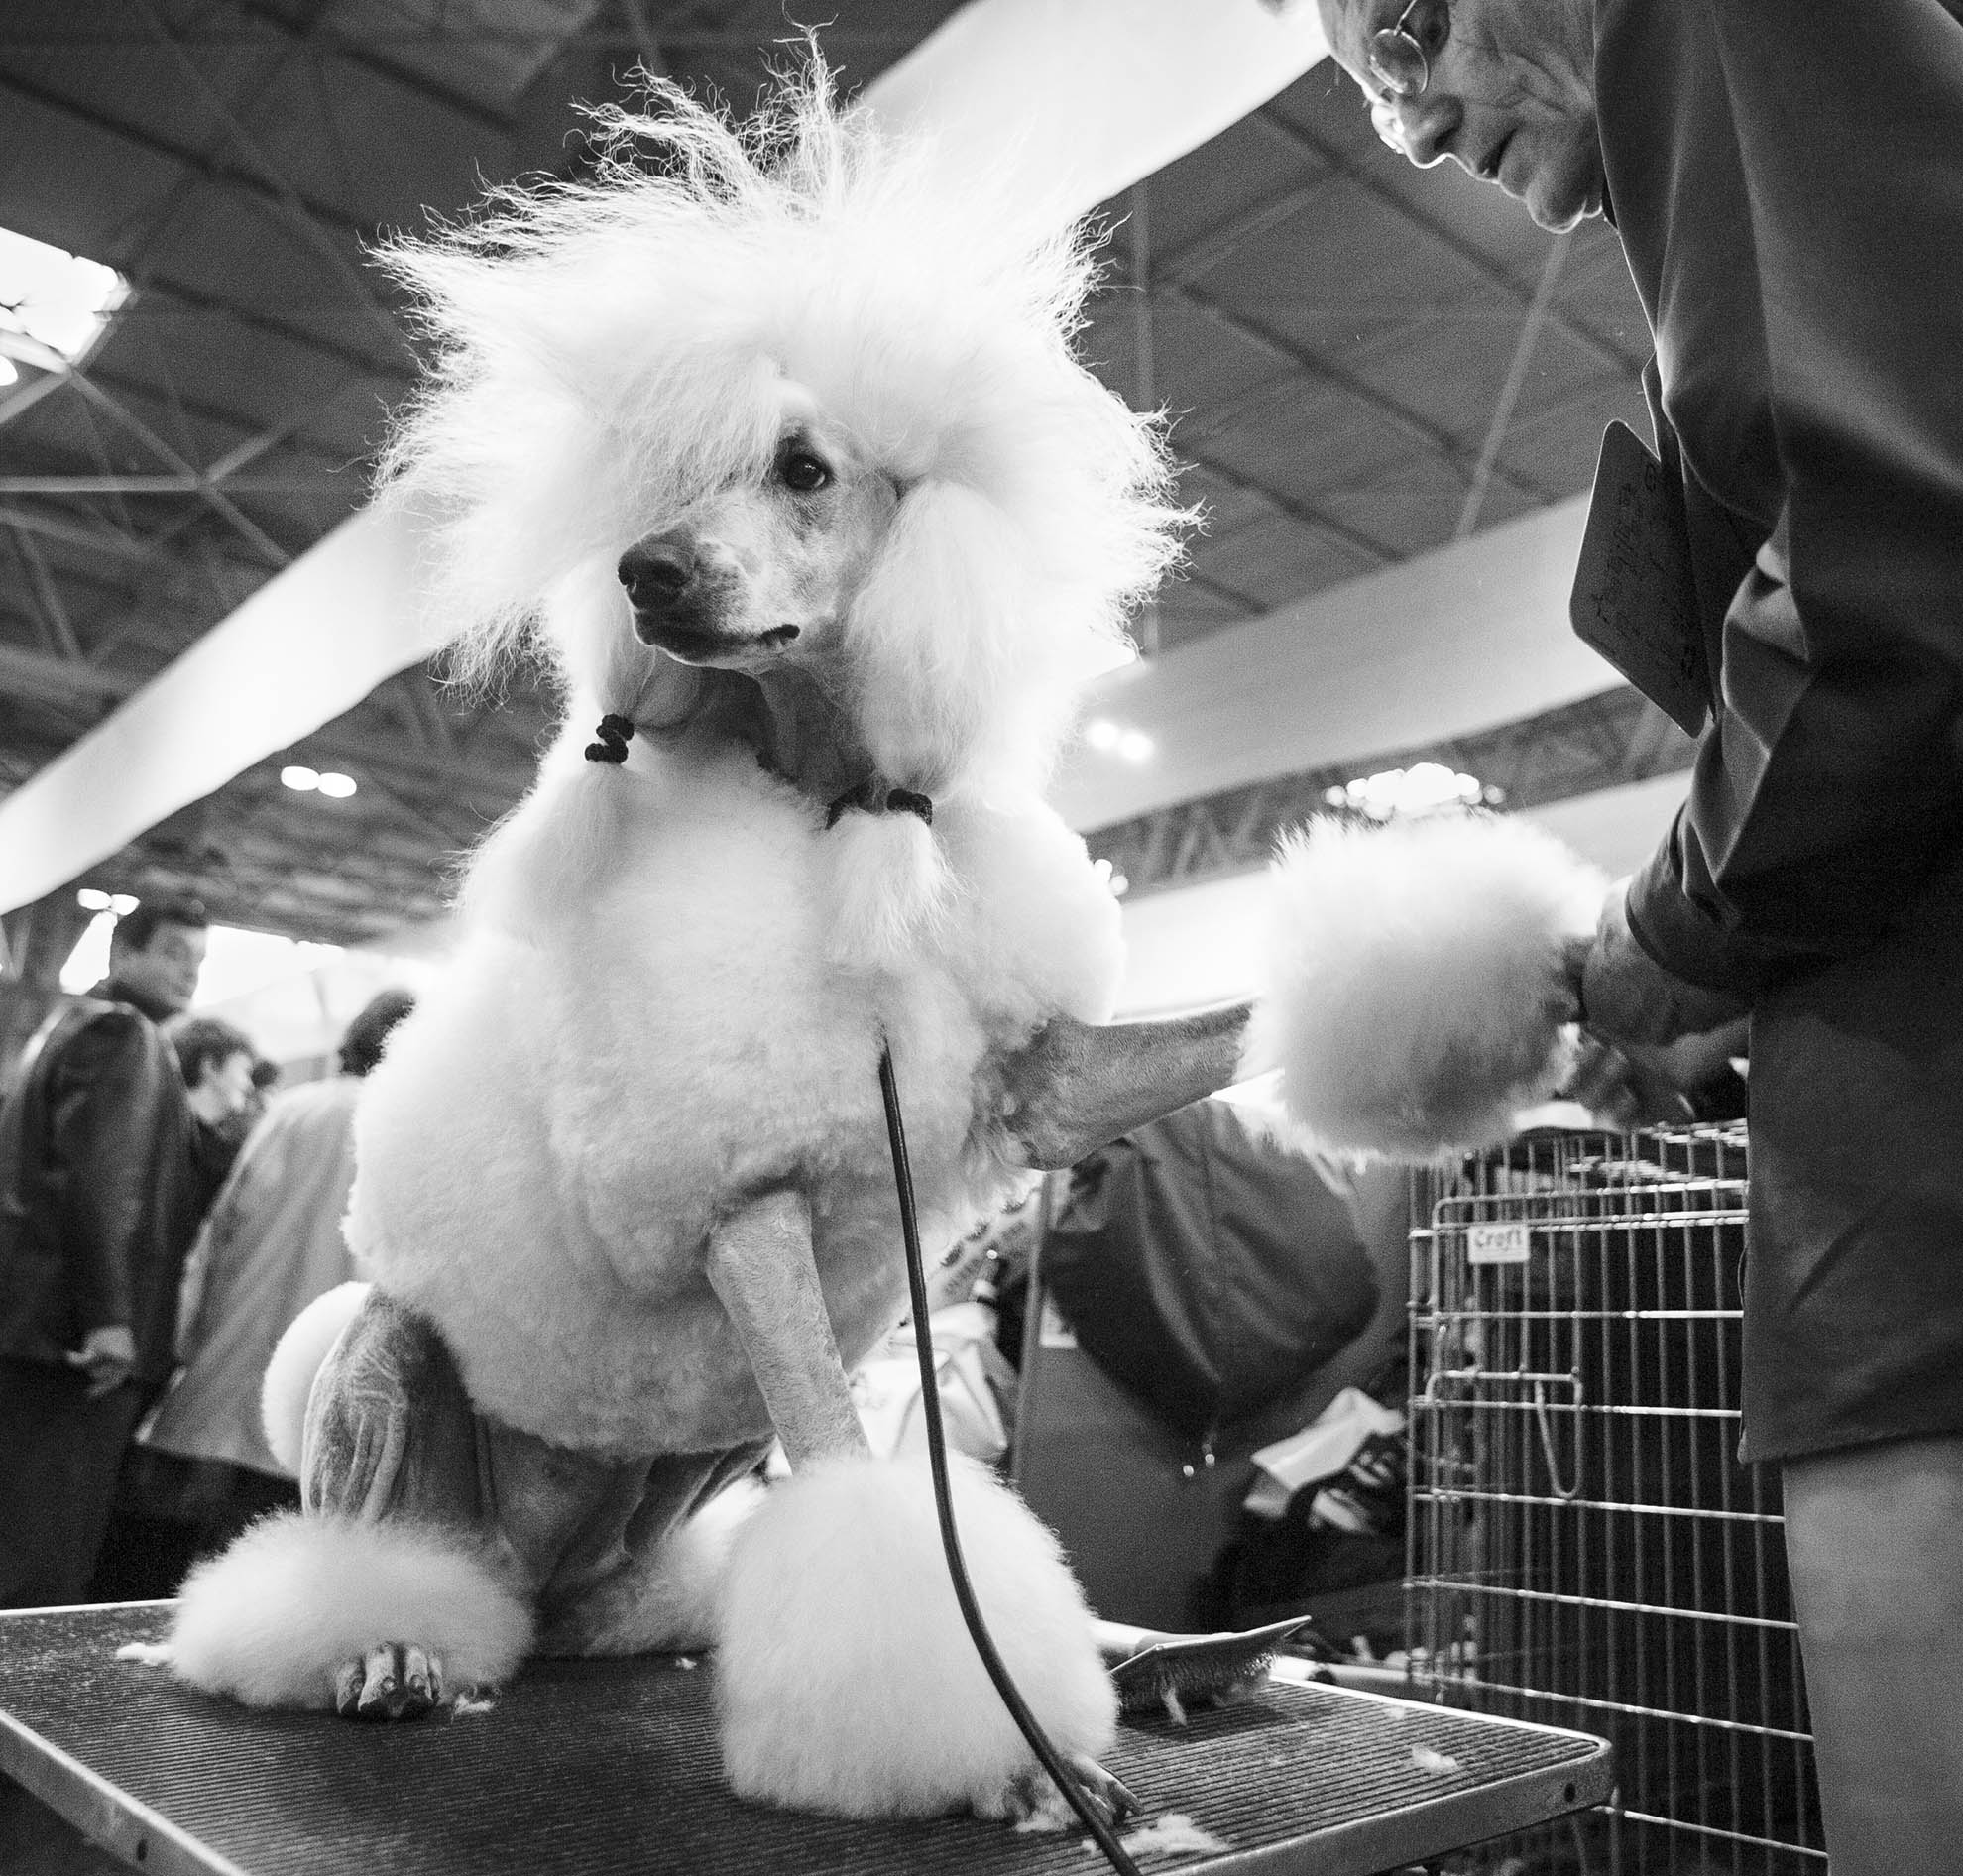 Crufts, the largest dog show in the world, takes place every March in Birmingham, UK.